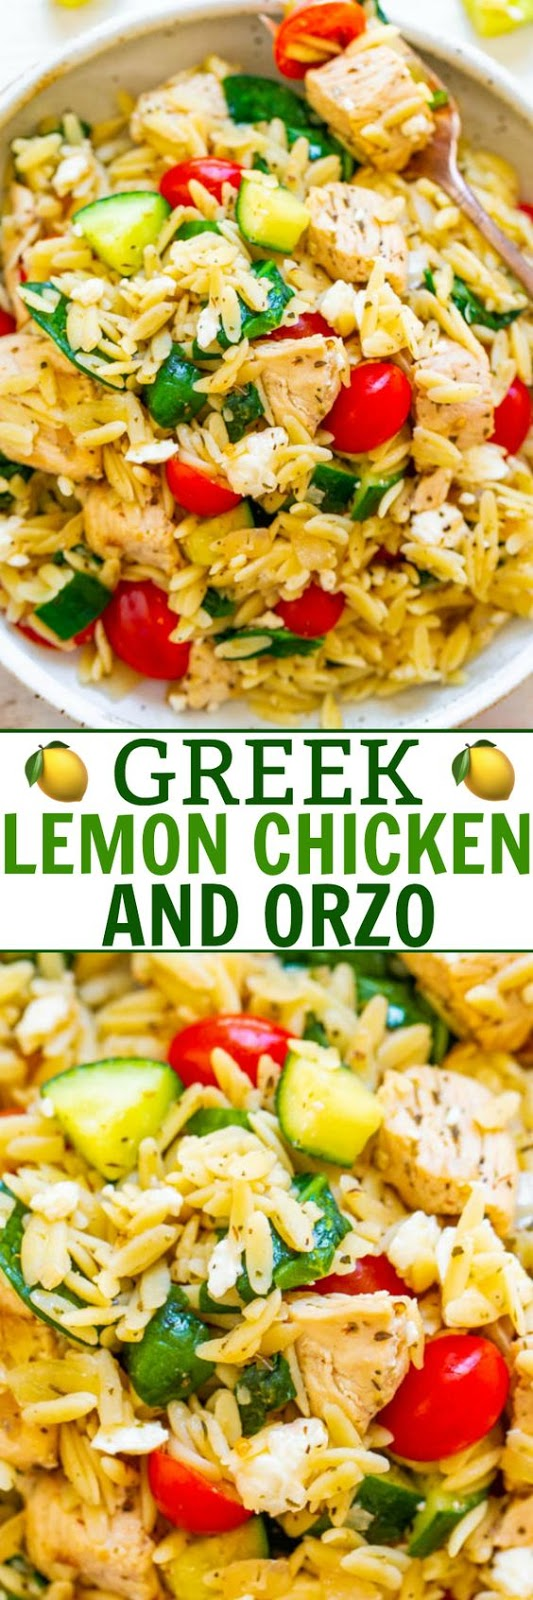 Greek Lemon Chicken and Orzo – EASY, ready in 25 minutes, and feeds a crowd!! Juicy lemon chicken with orzo, fresh spinach, cucumbers, and tomatoes make this a dinnertime WINNER! Great for parties, picnics, and potlucks!